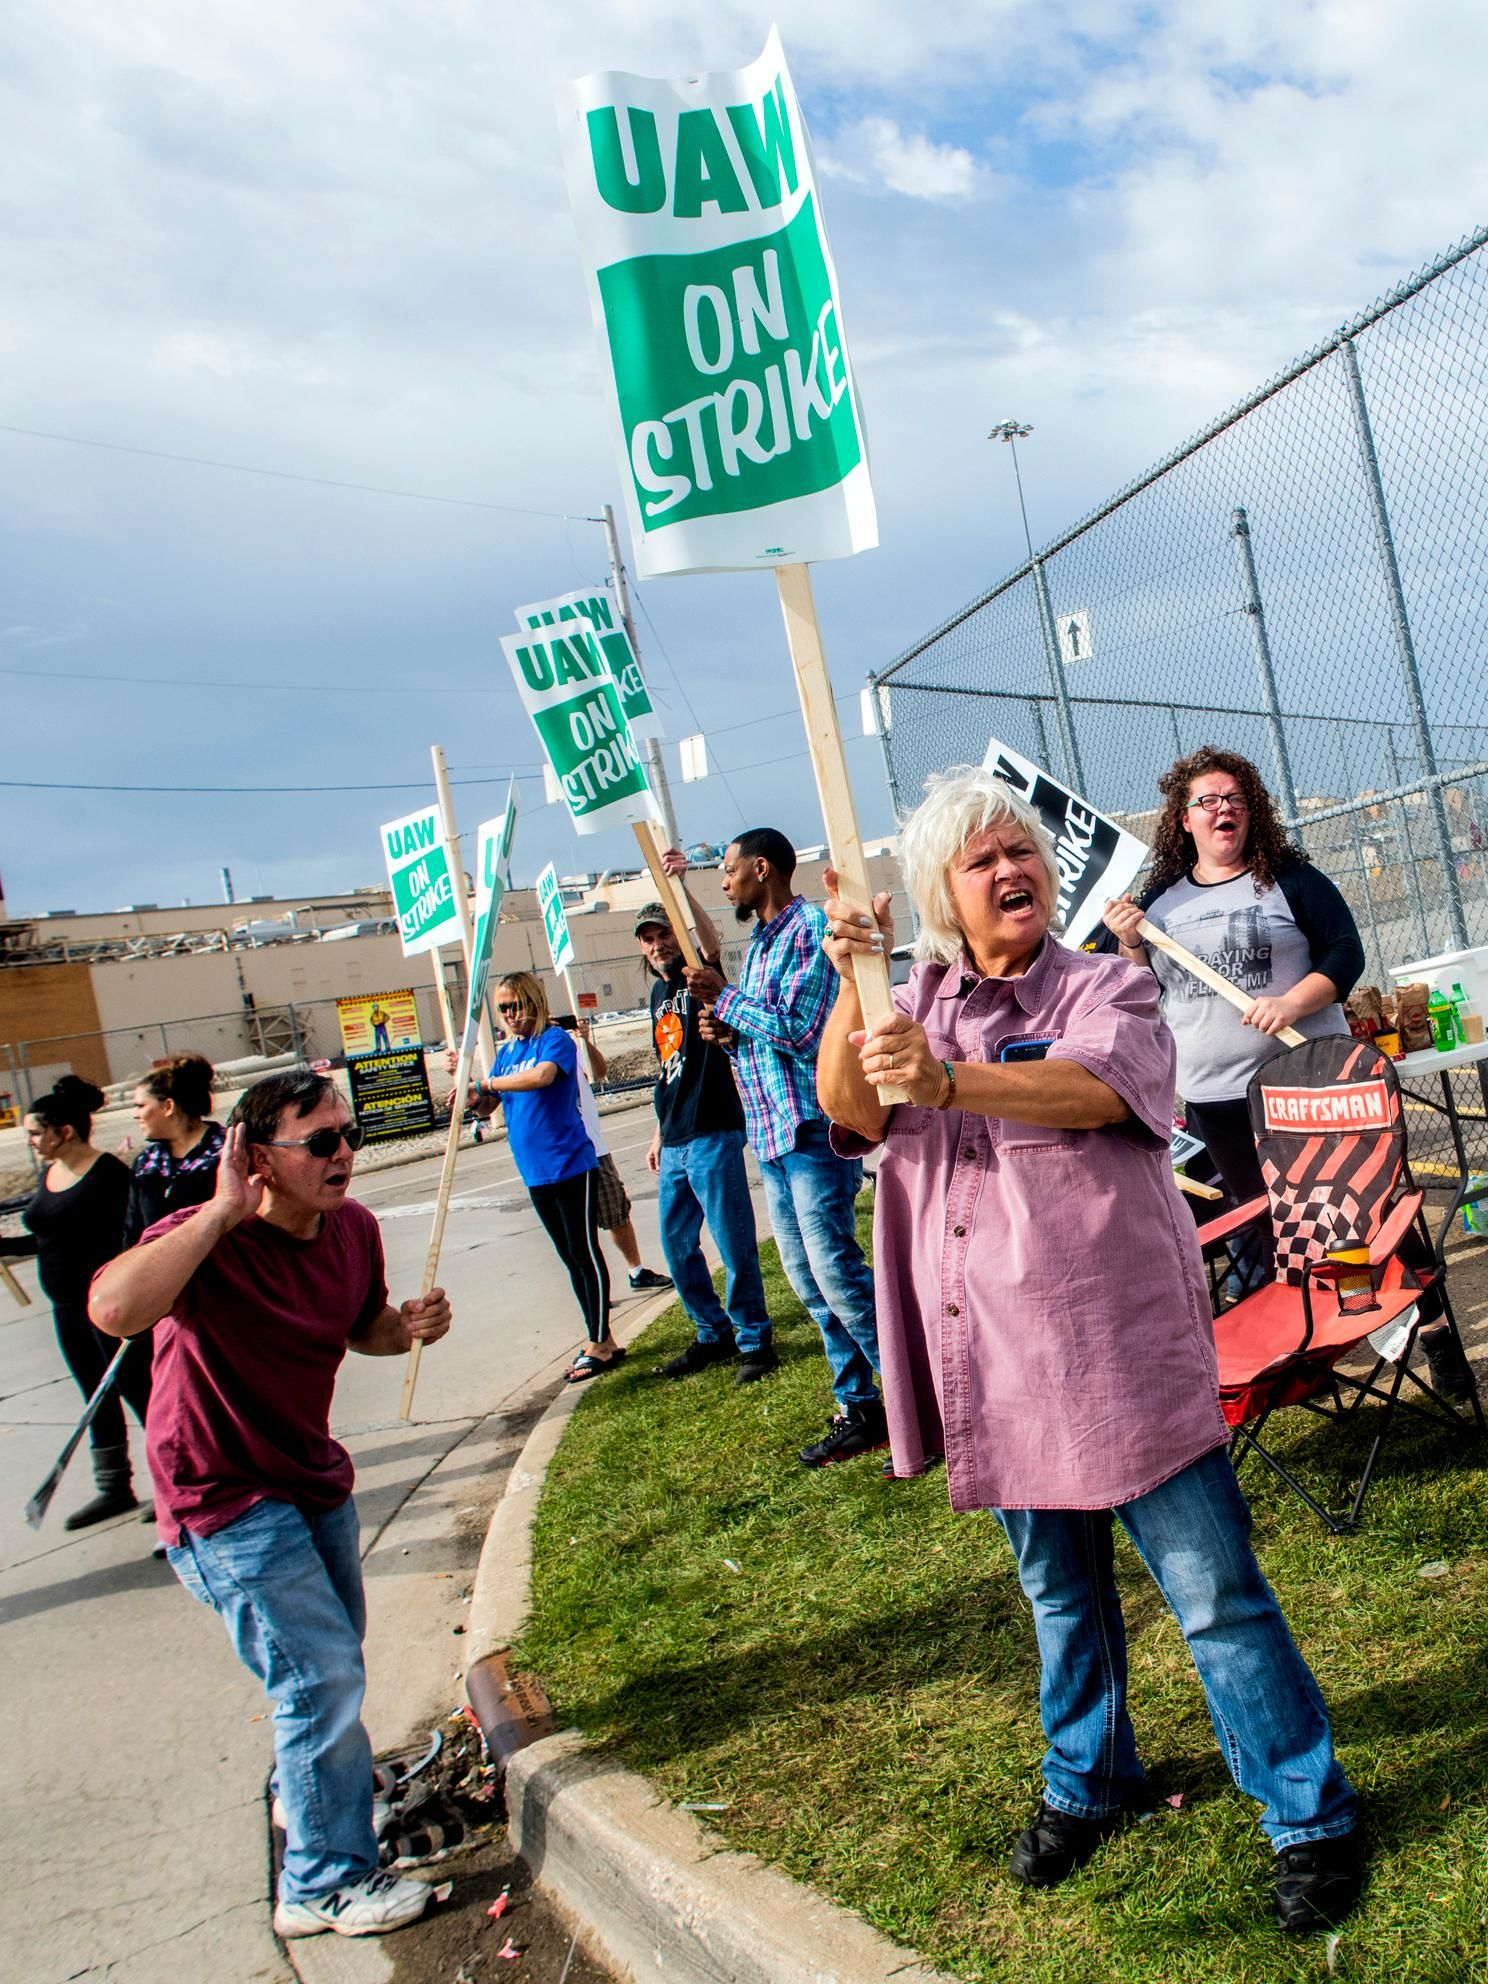 Susan Donovan, of Davison, stands outside of the Flint Assembly Plant as General Motors employees demonstrate on Sunday, Sept. 15, 2019, in Flint, Mich. The United Auto Workers union says its contract negotiations with GM have broken down and its members will go on strike just before midnight on Sunday.  (Jake May/The Flint Journal via AP)